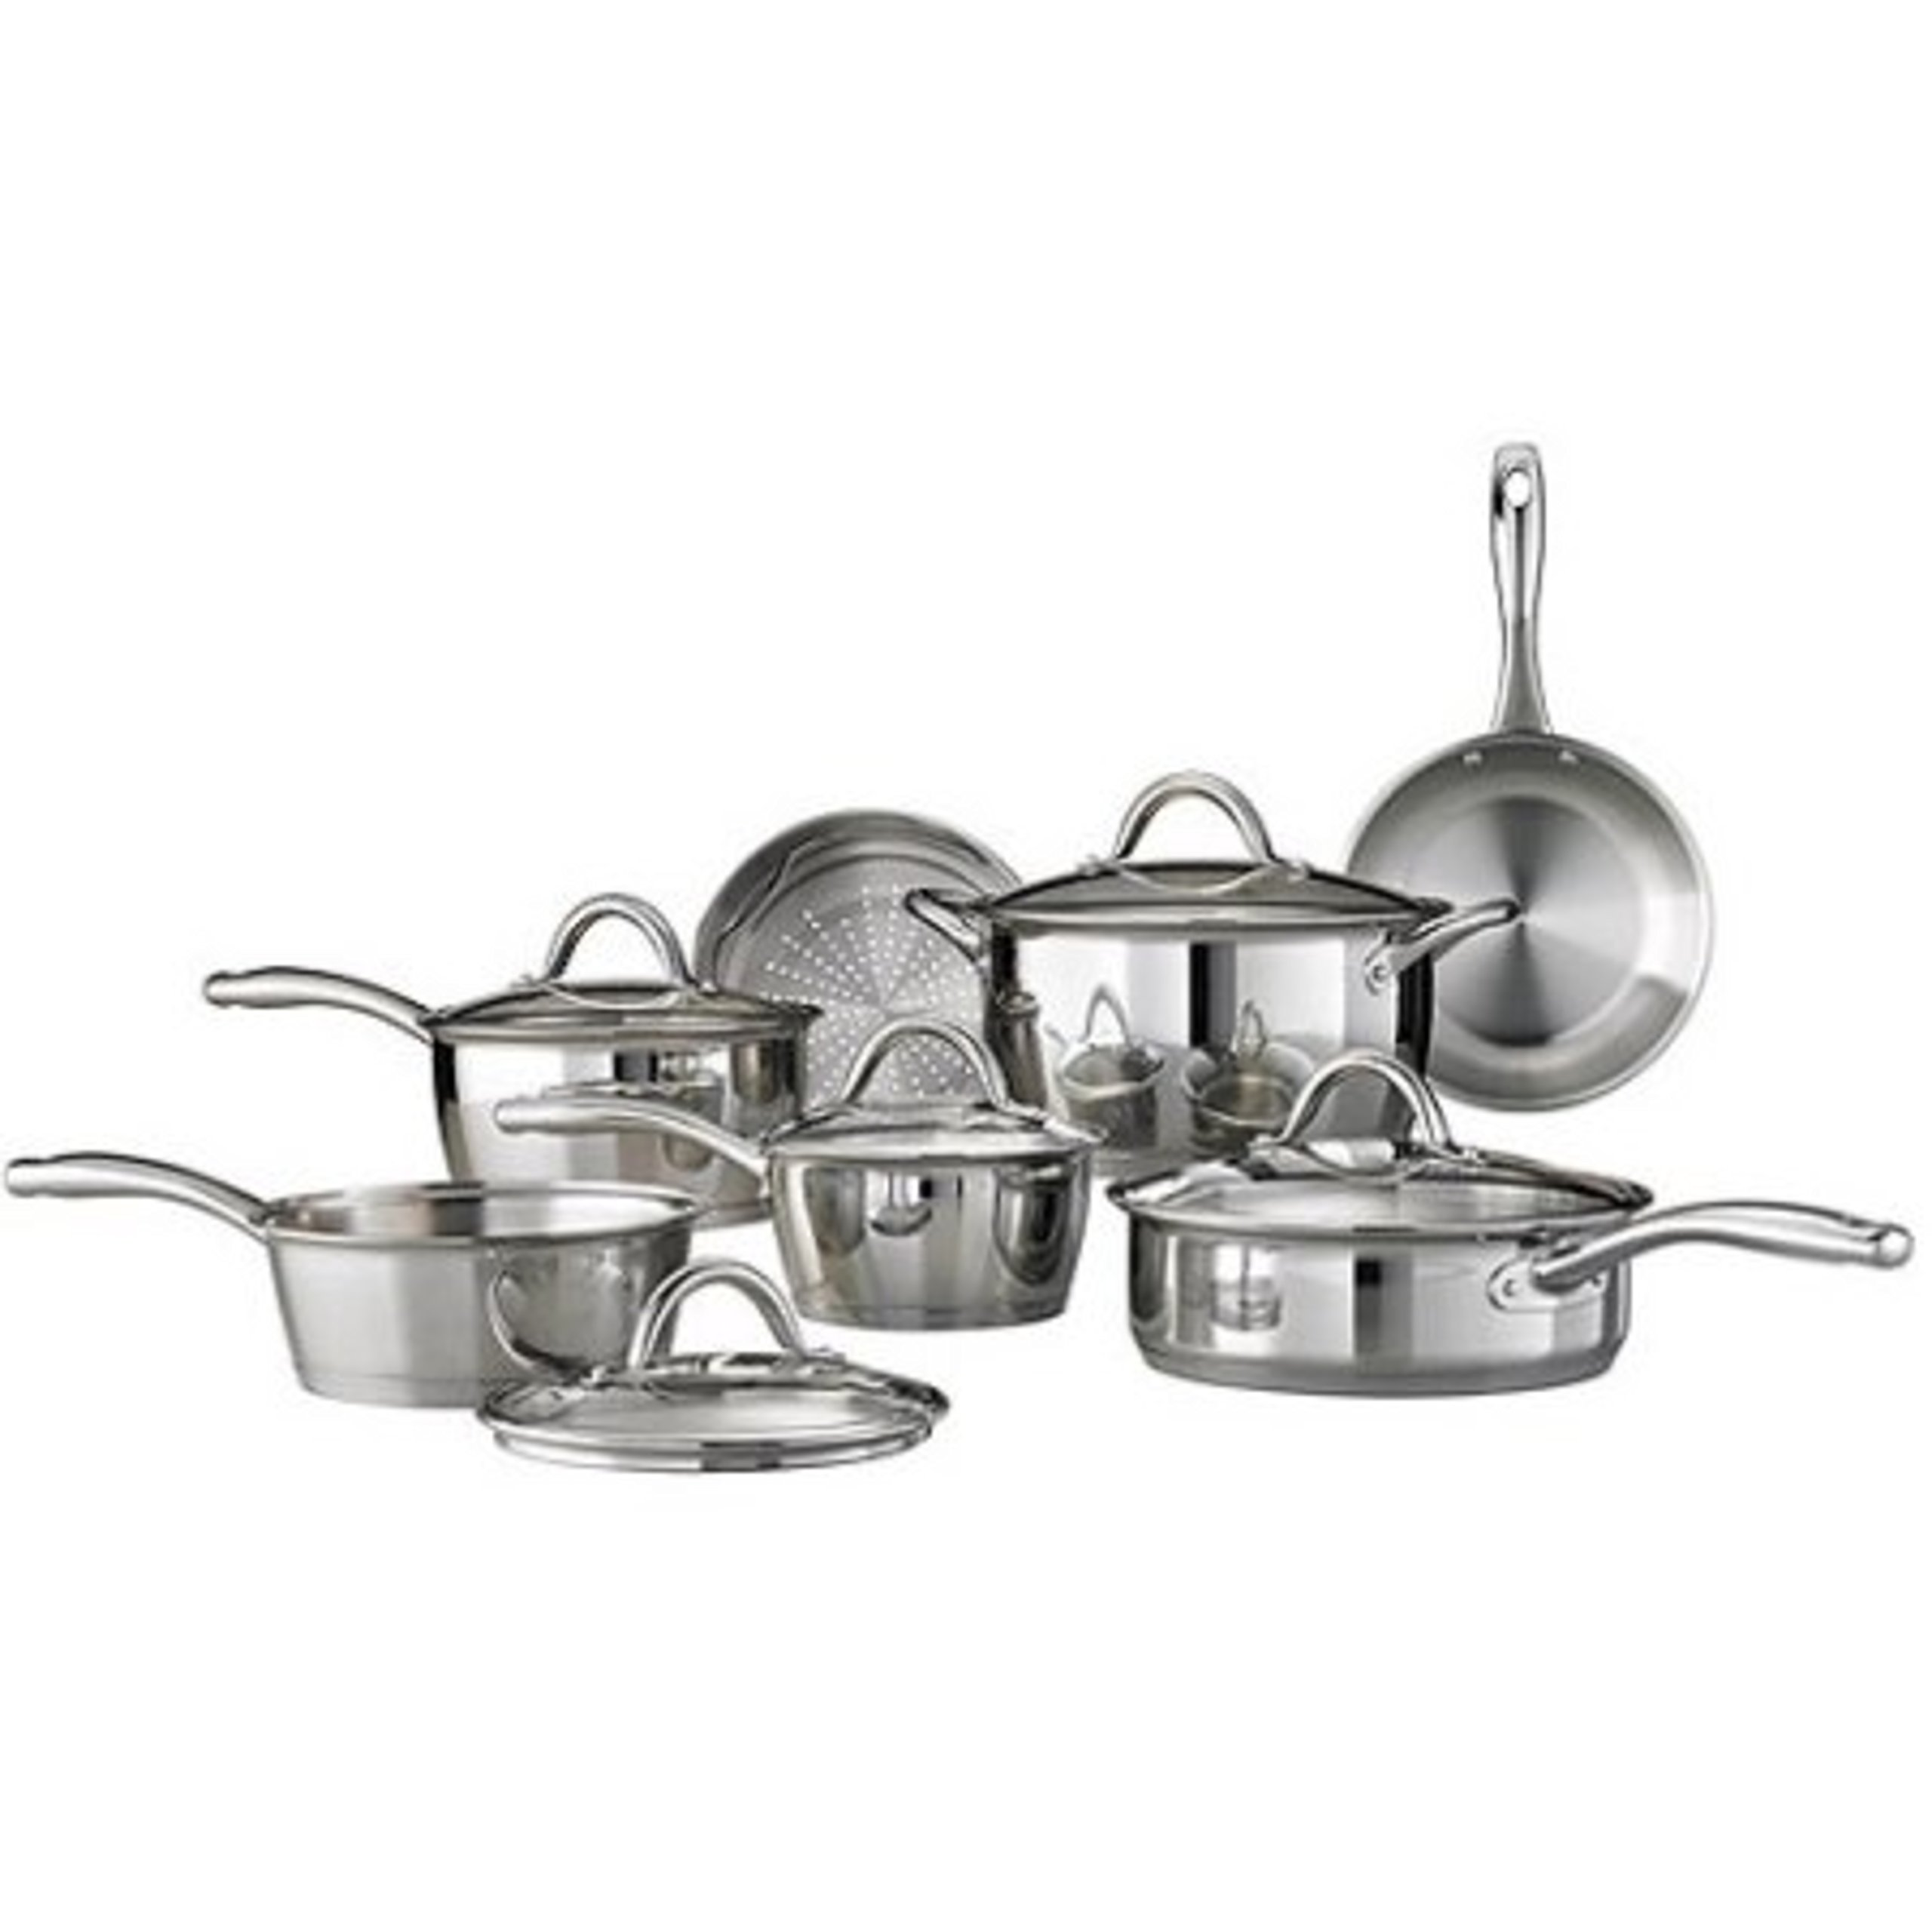 12-Piece Premium 18/8 Stainless Steel Tri-Ply Base Cookware Set